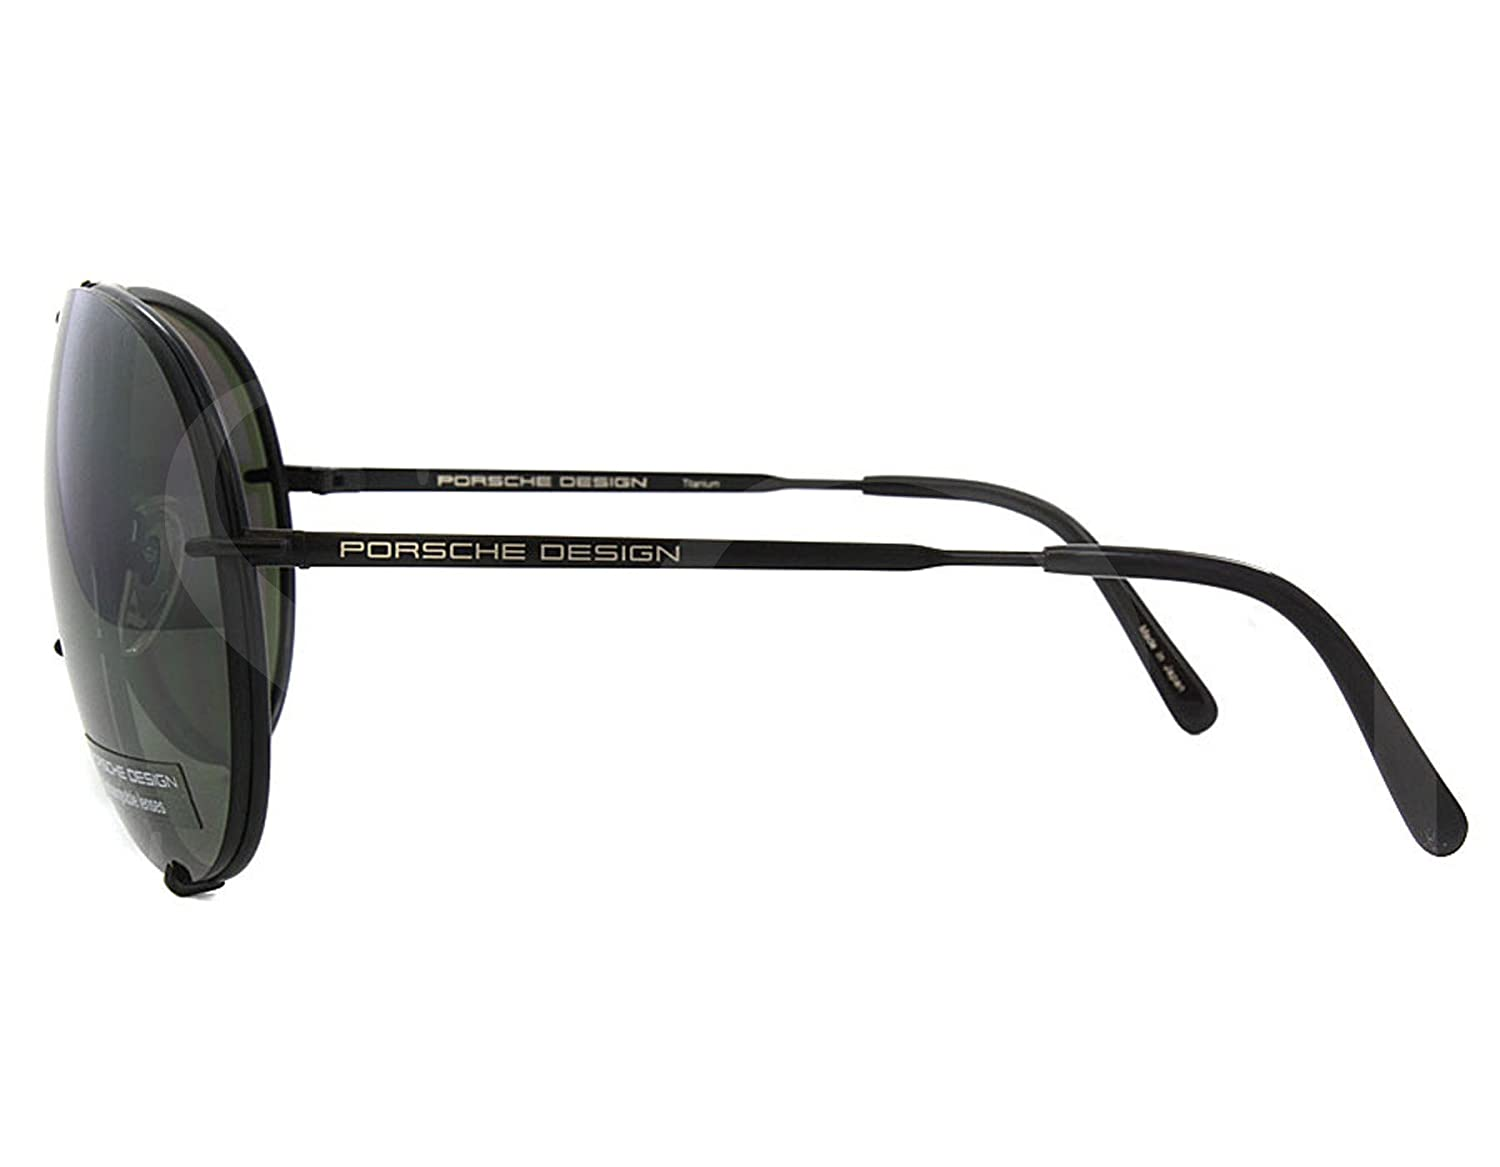 59e7c5df3ce Porsche Design Aviator Sunglasses « One More Soul